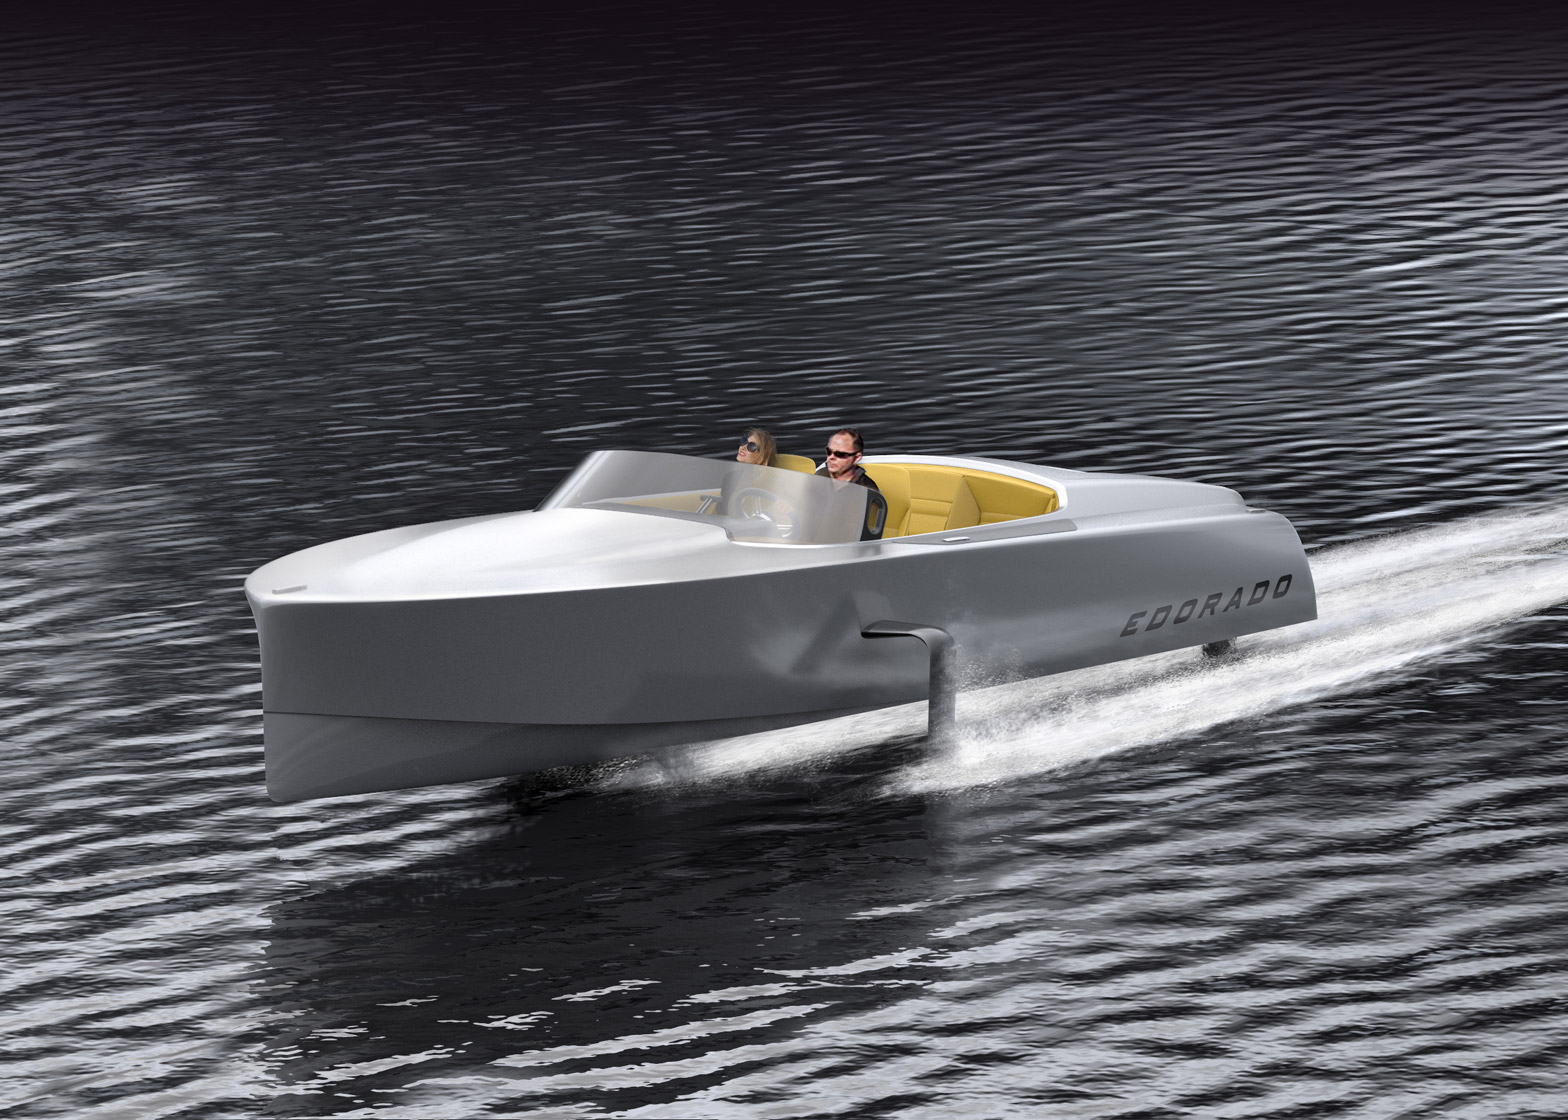 Edorado S7 electric powerboat